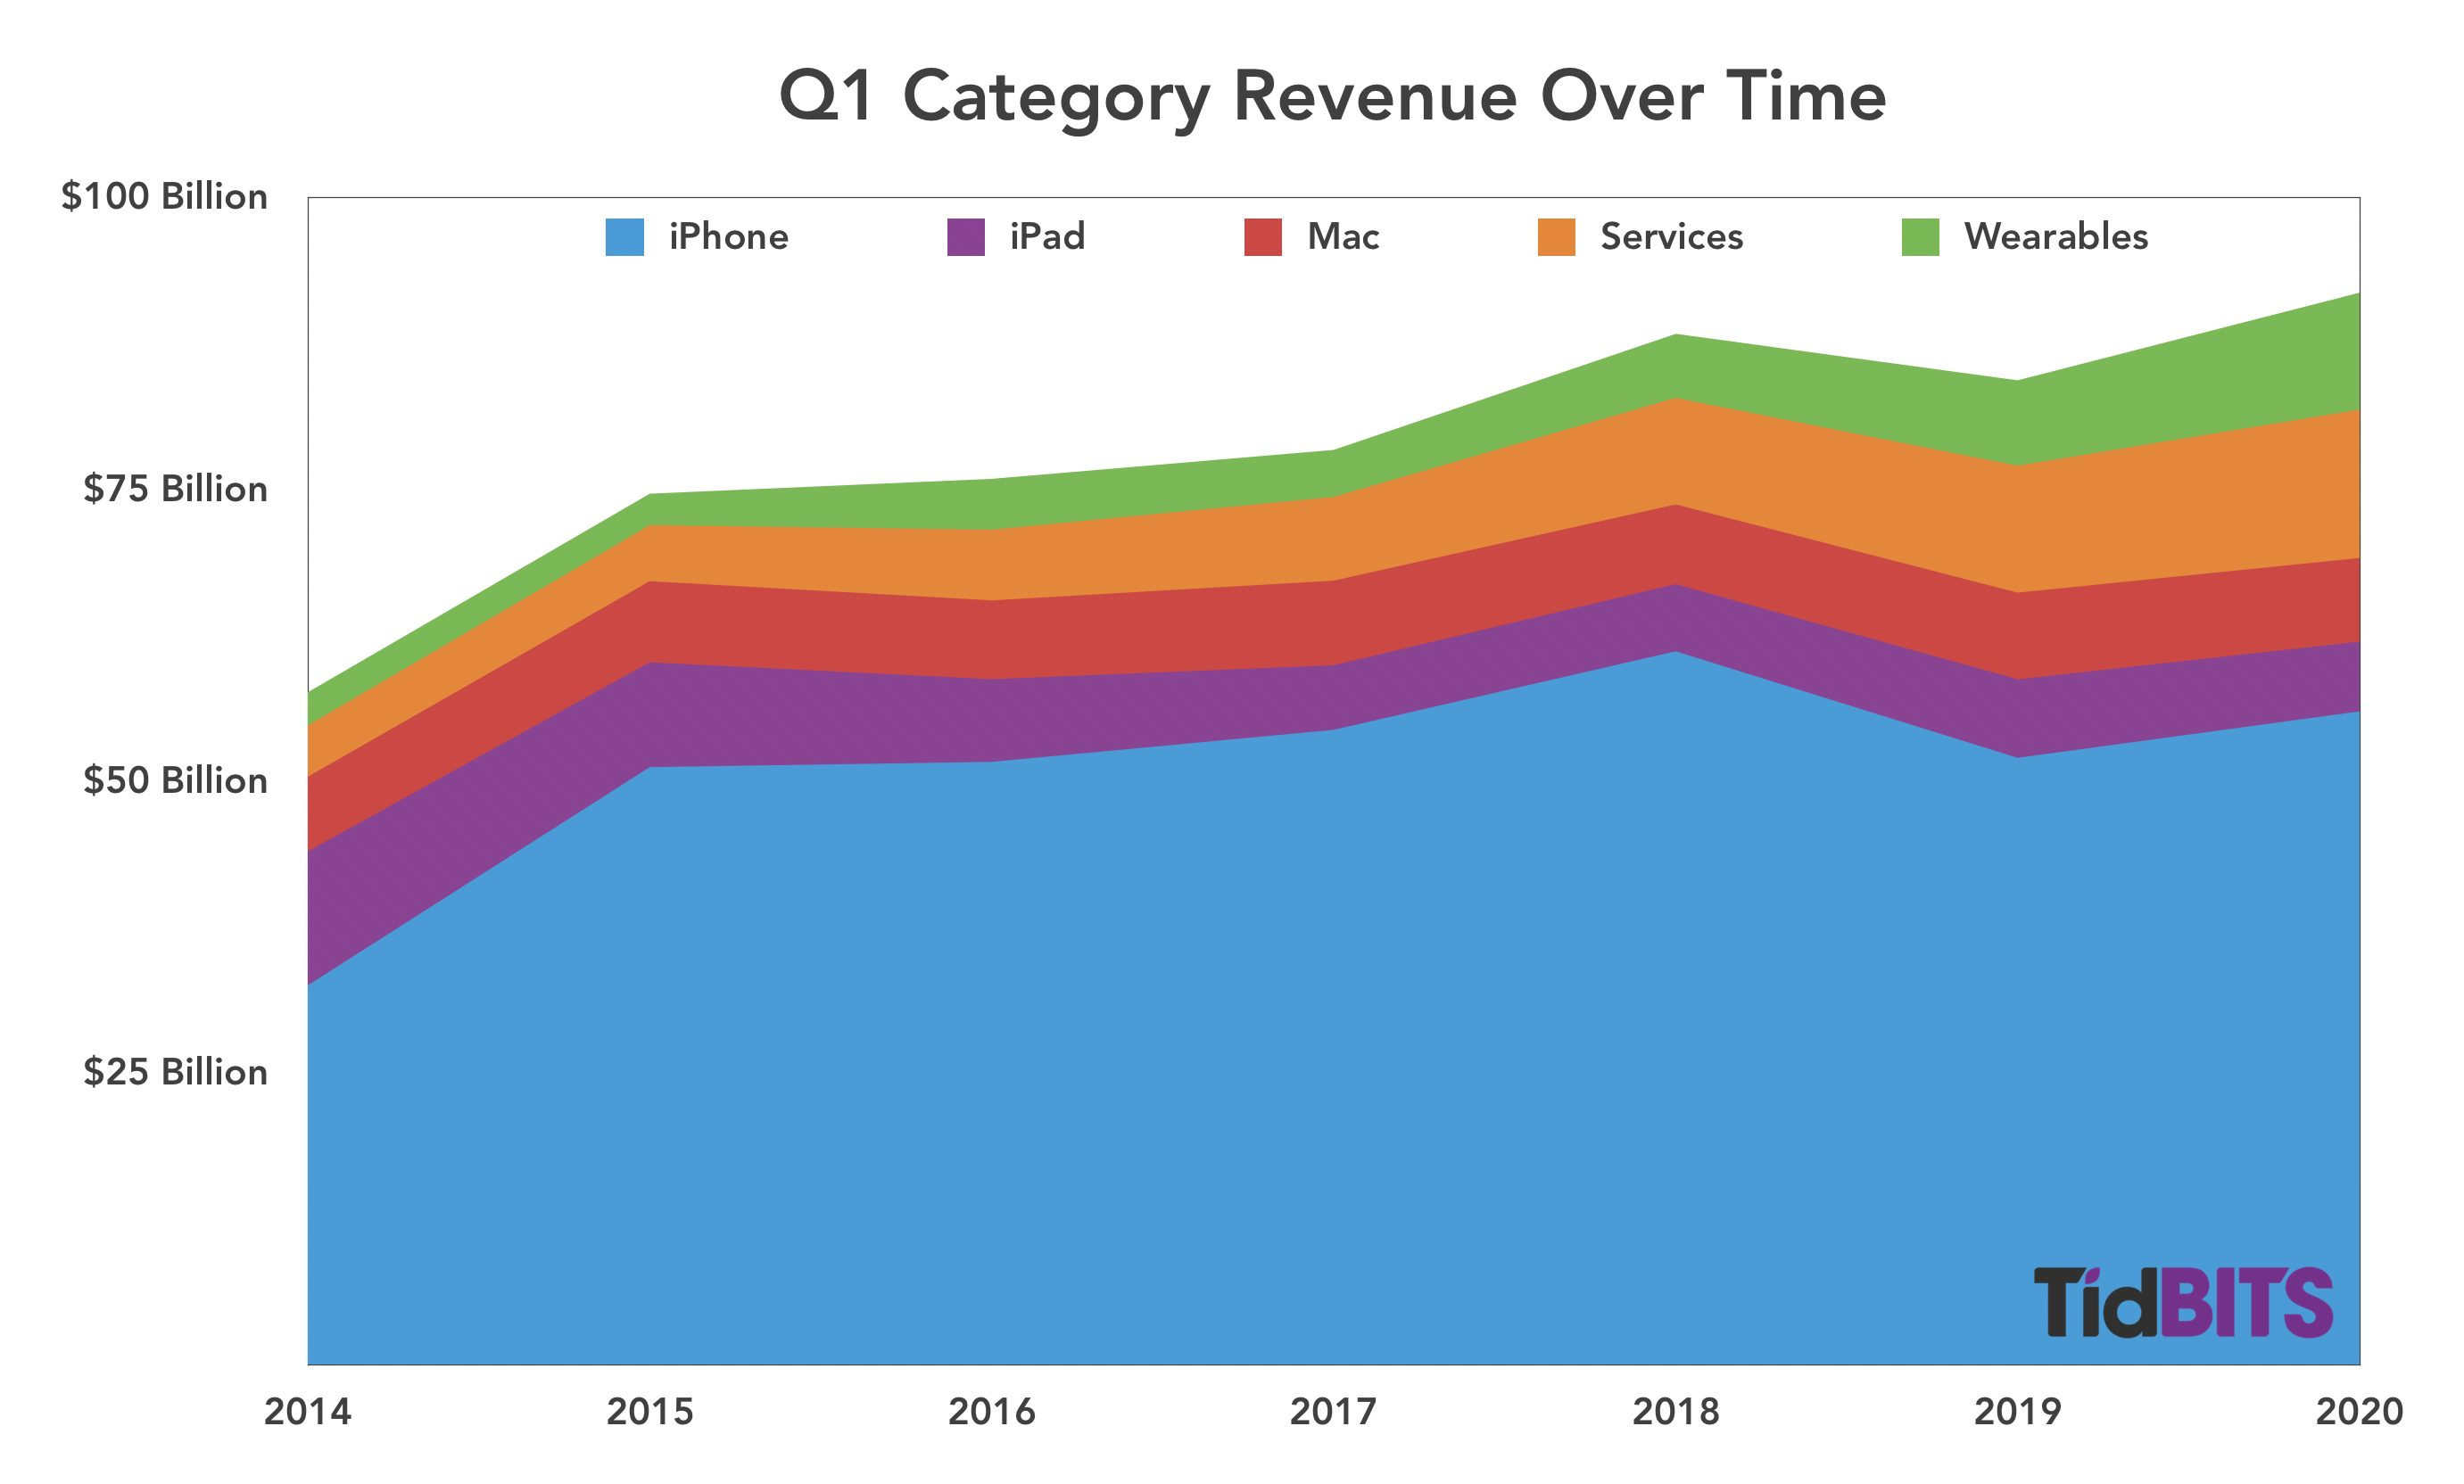 Q1 category revenues over time